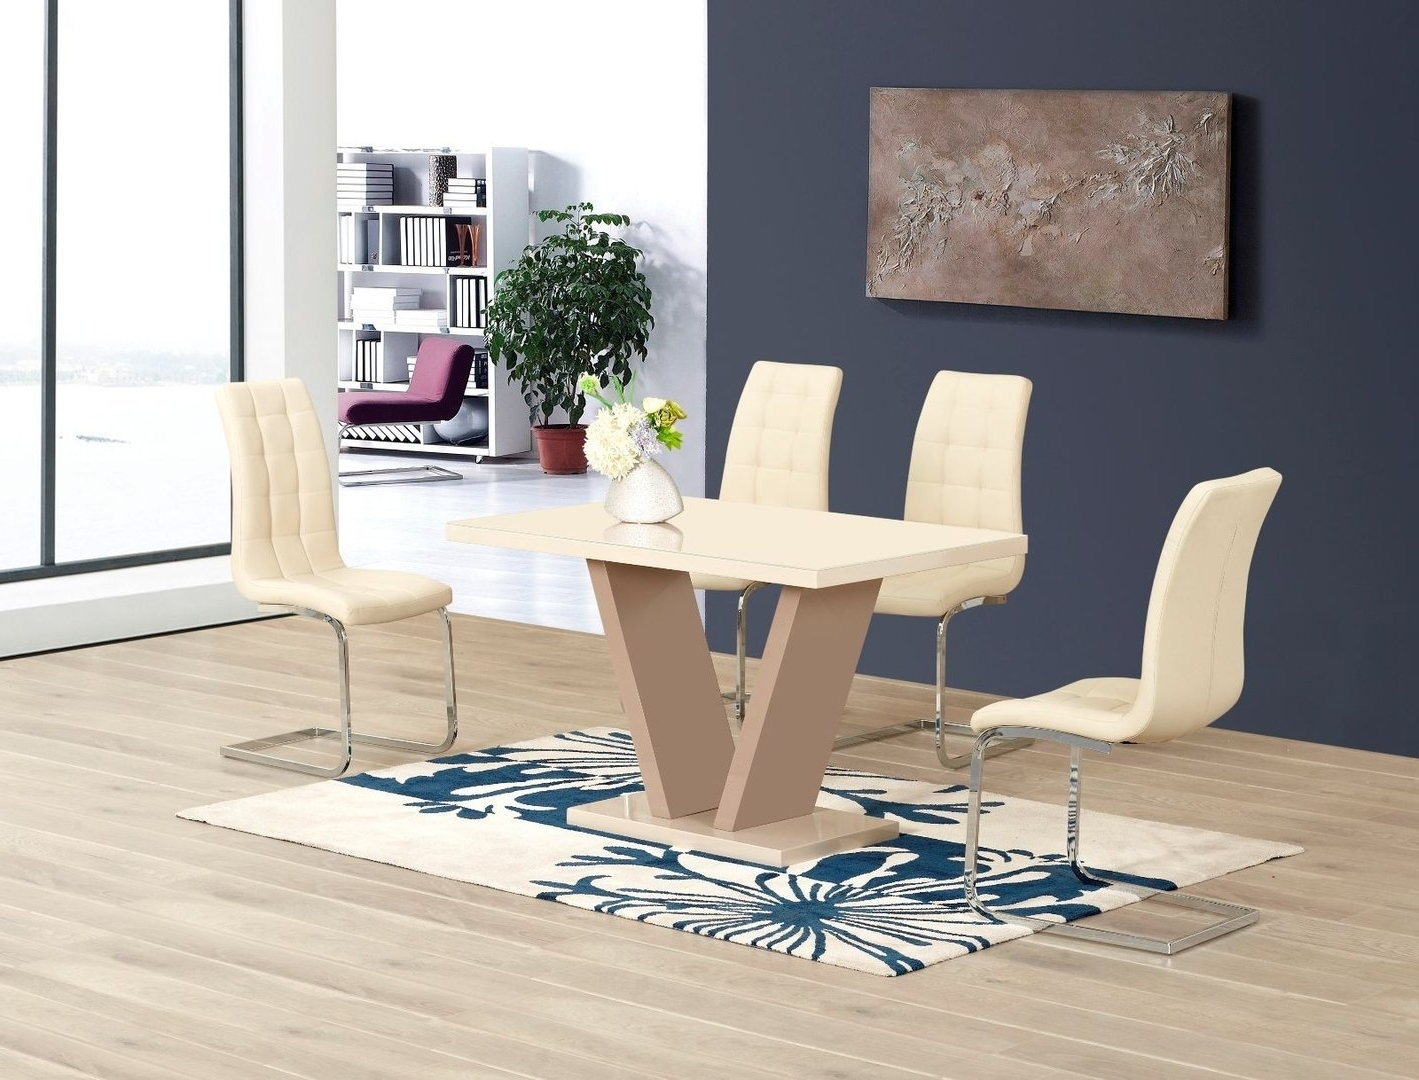 Widely Used White High Gloss Dining Tables And Chairs With Regard To Cream High Gloss Glass Dining Table And 6 Chairs – Homegenies (View 25 of 25)